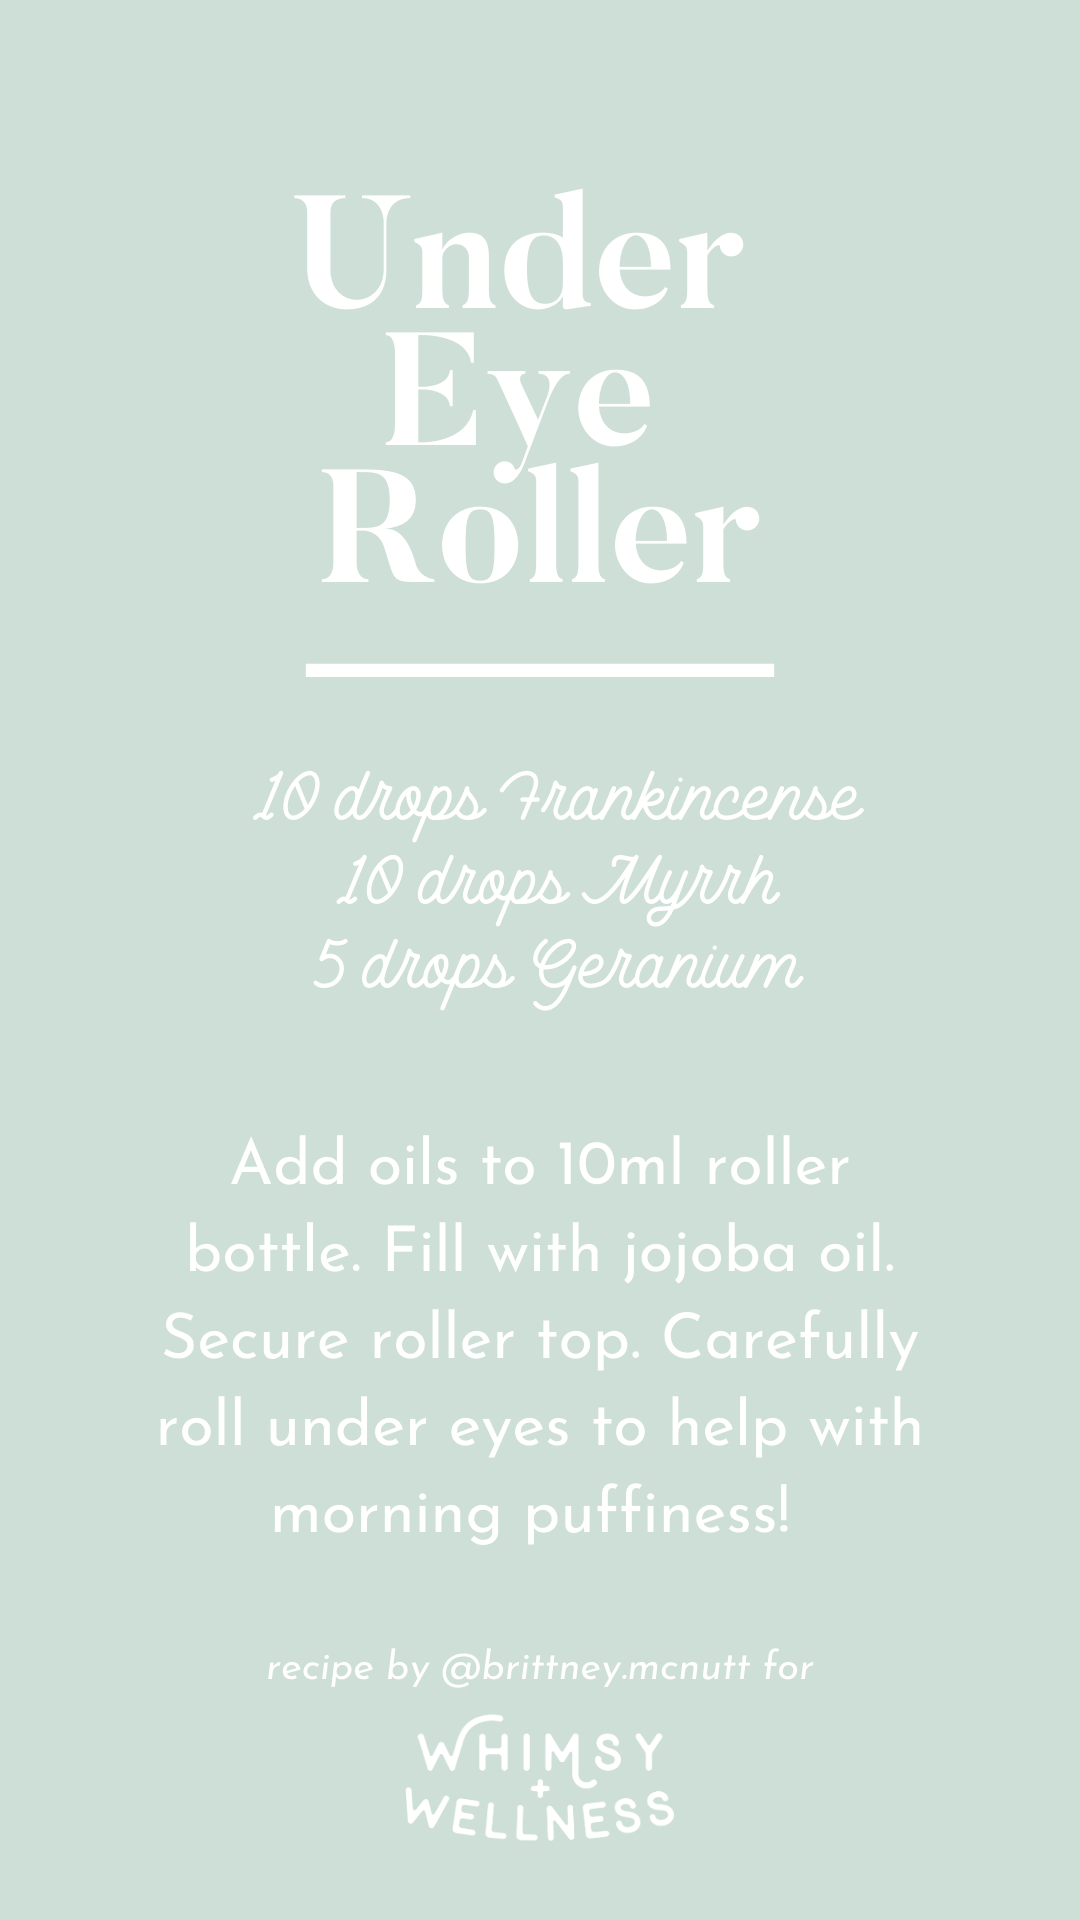 Under eye roller recipe blend using Young Living essential oils